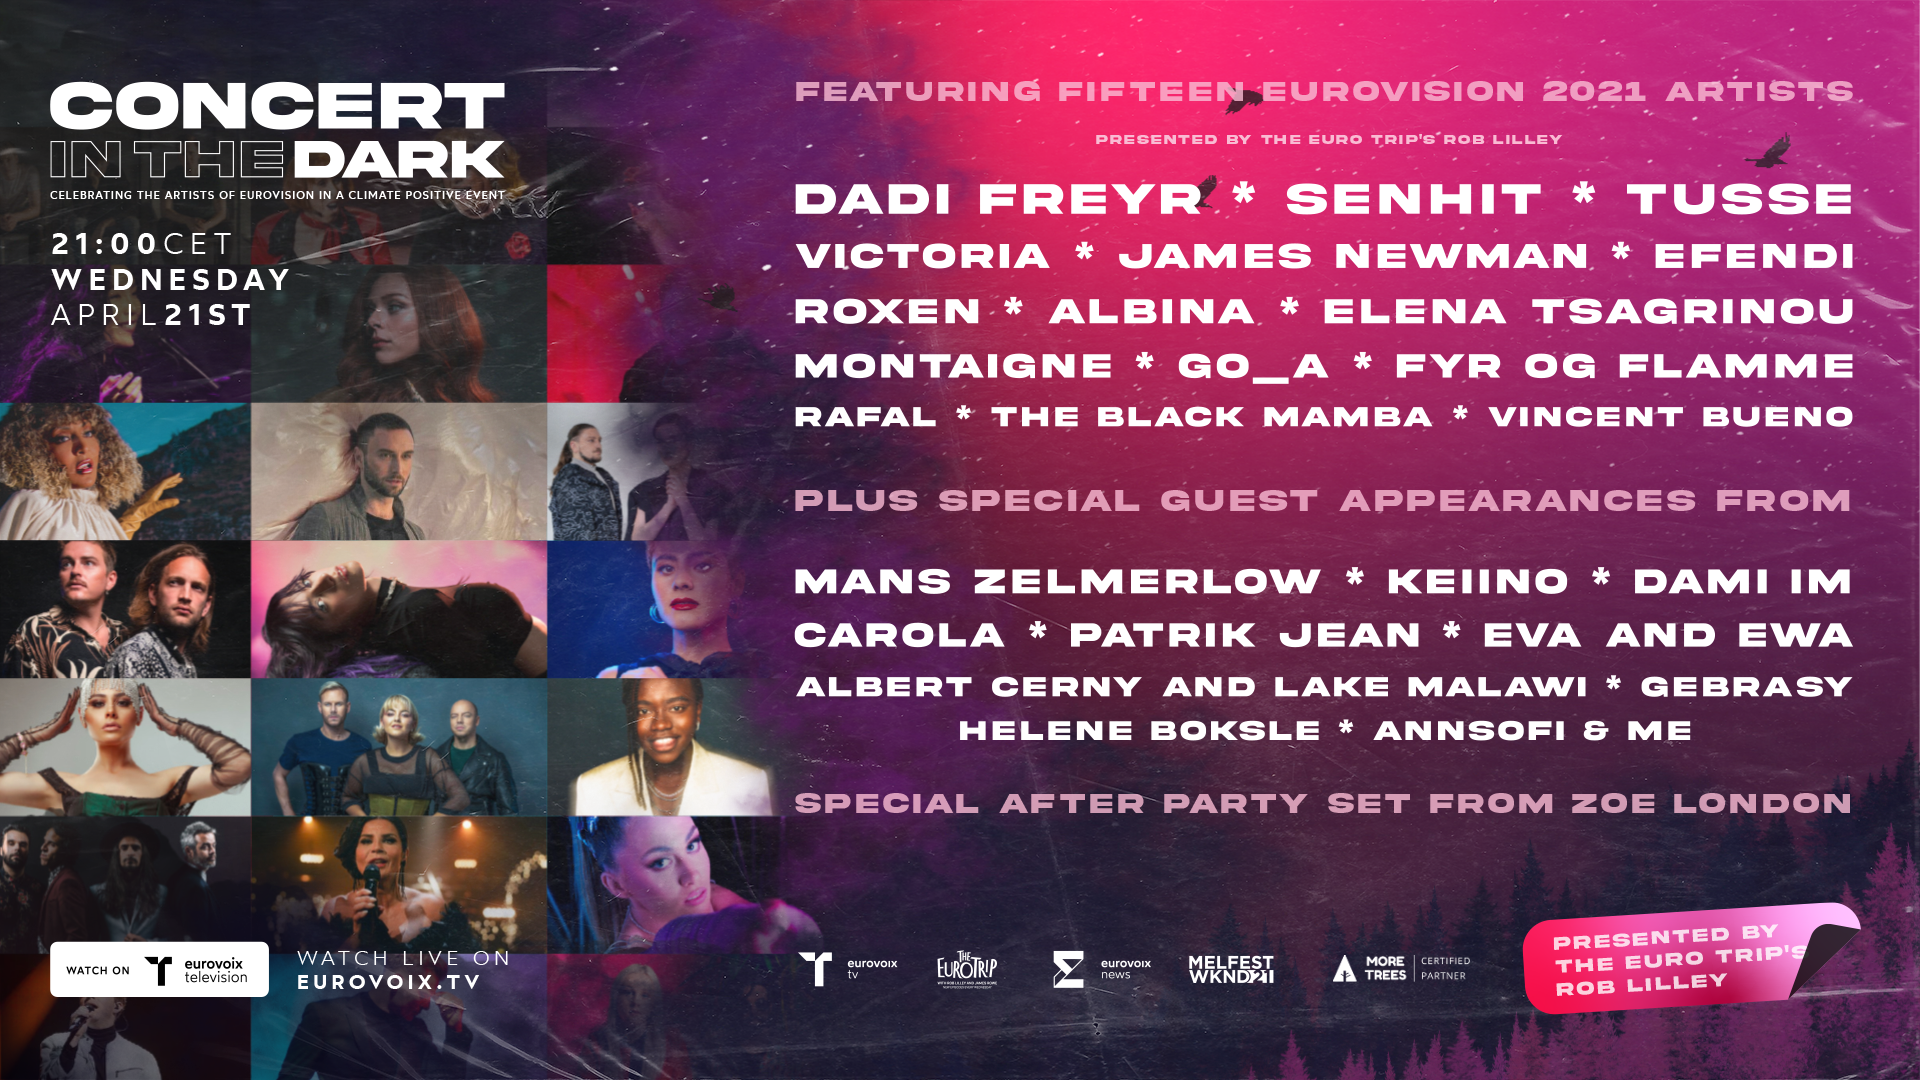 Eurovision 2021 Pre-Party: Tonight 'Concert in the Dark' takes place online